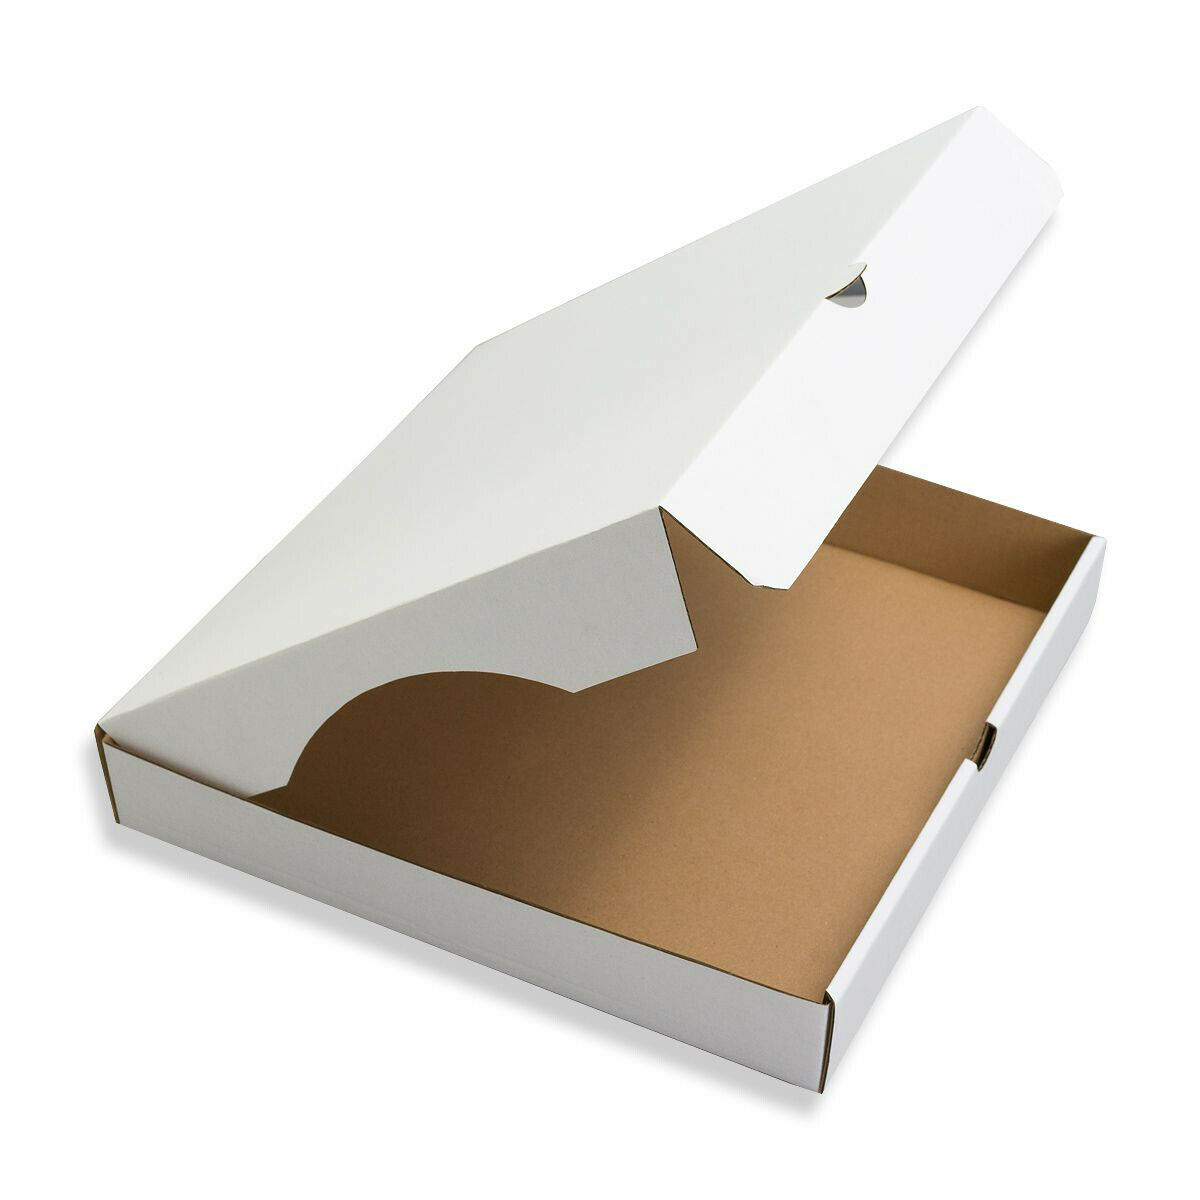 240mm x 240mm x 50mm Pizza Style White Corrugated Cardboard Postal Boxes Qty 100 164030945215 - 240mm x 240mm x 50mm Pizza Style White Corrugated Cardboard Postal Boxes Qty 100